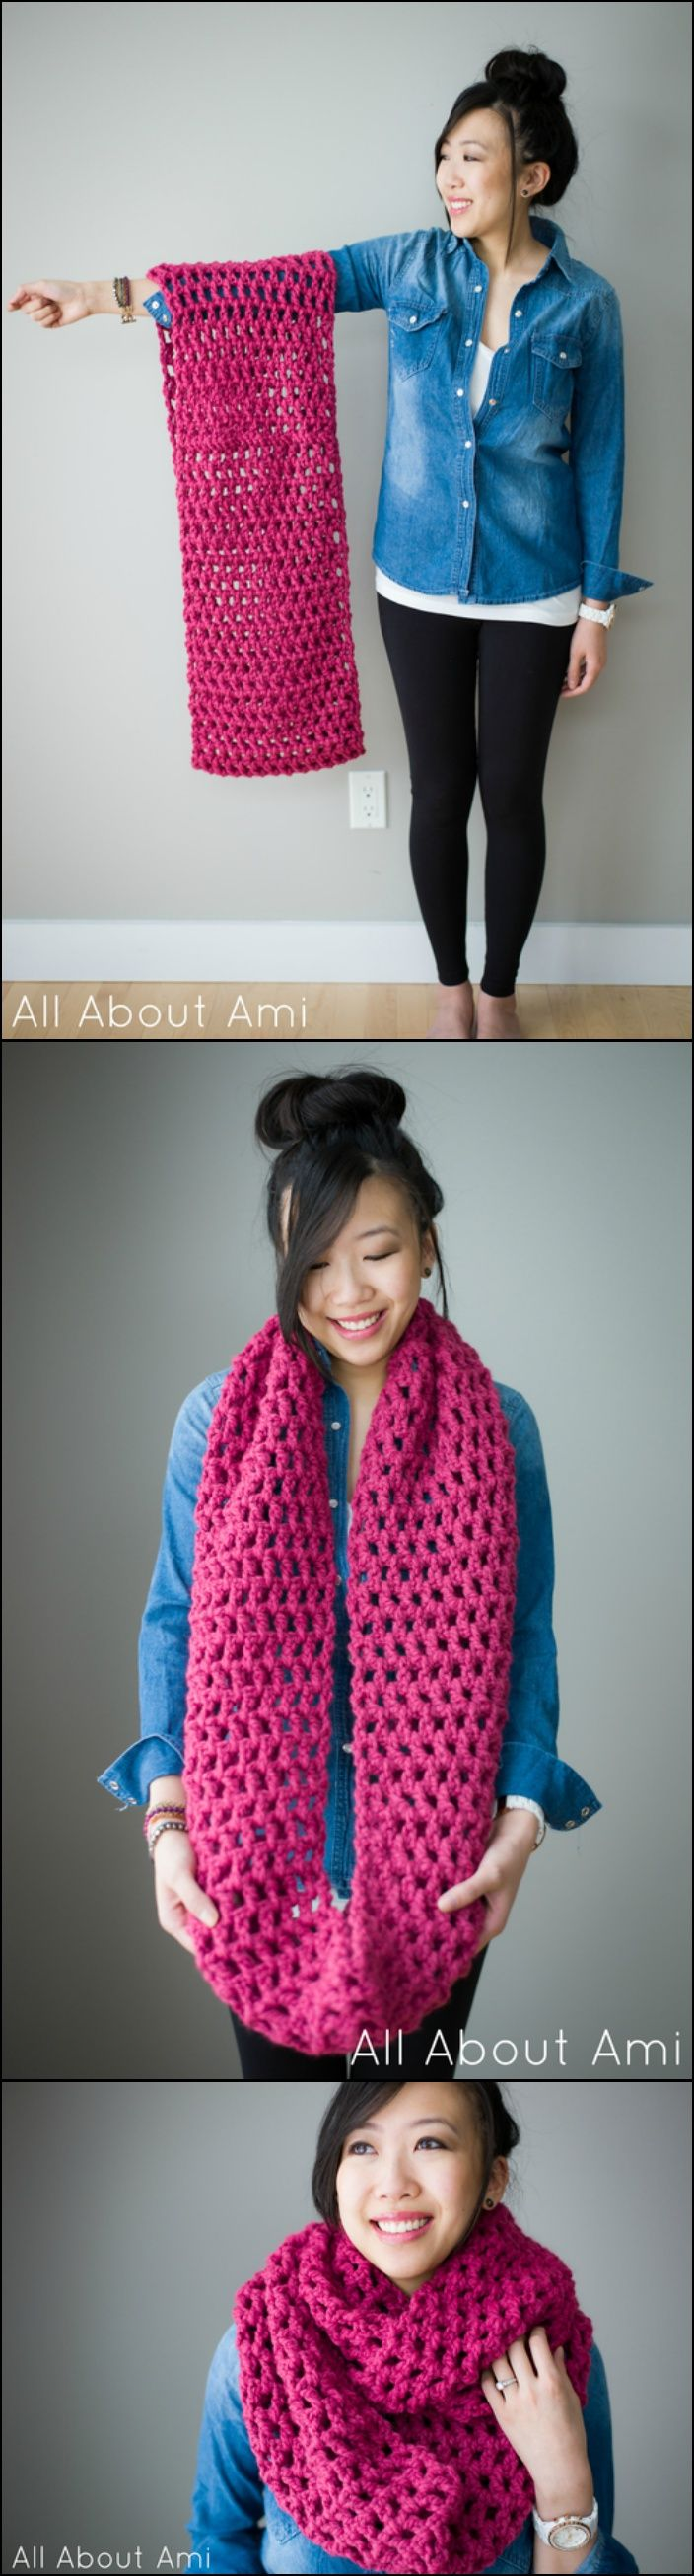 20 Amazing Free Crochet Patterns That Any Beginner Can Make